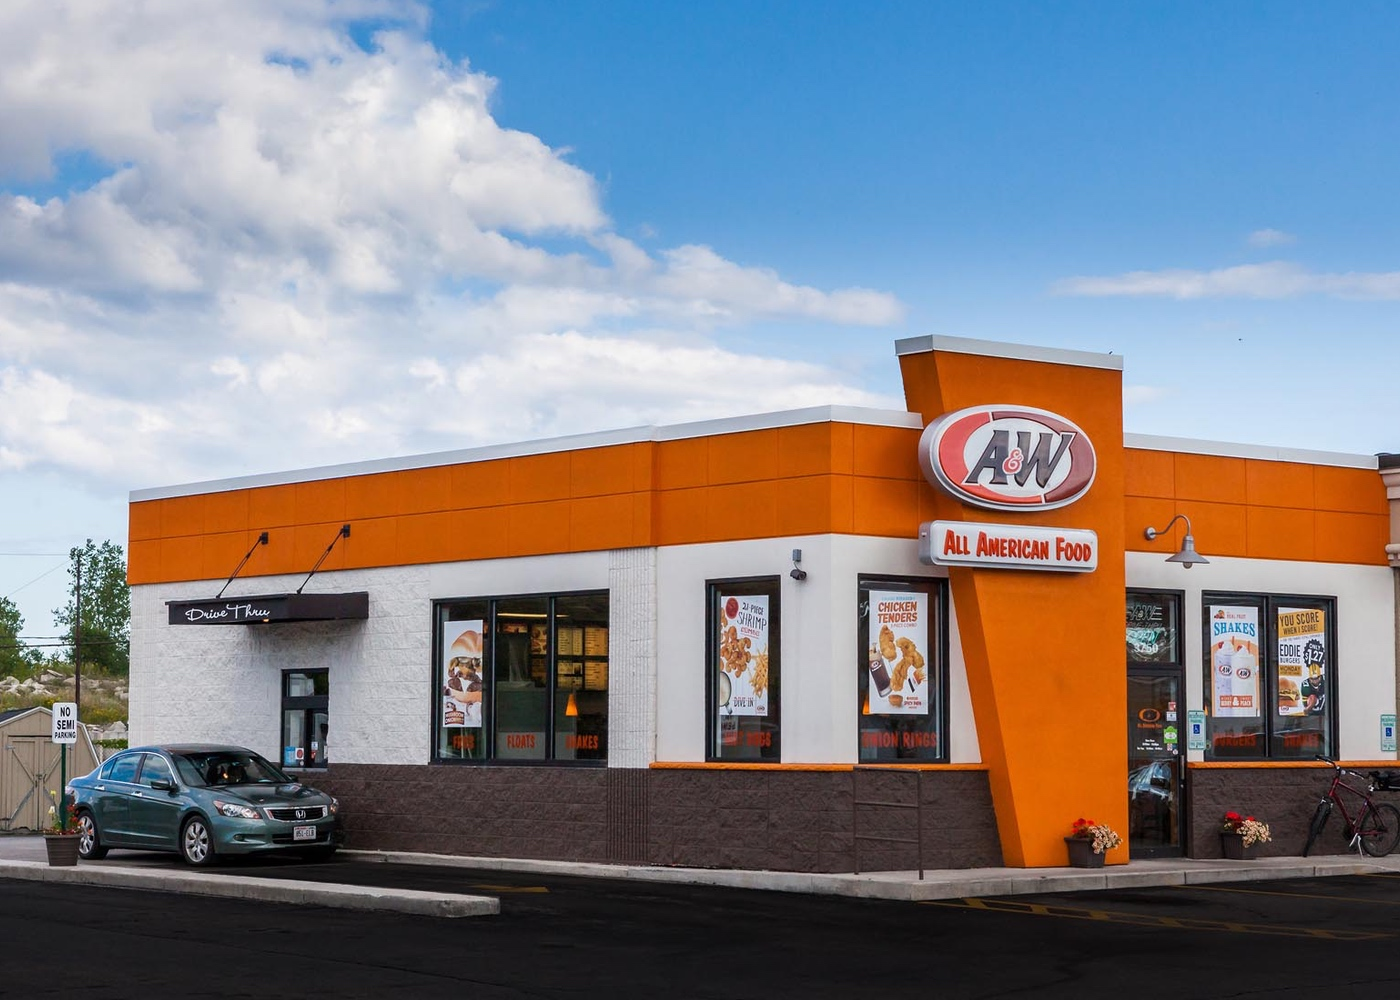 Side view of an A&W Restaurant